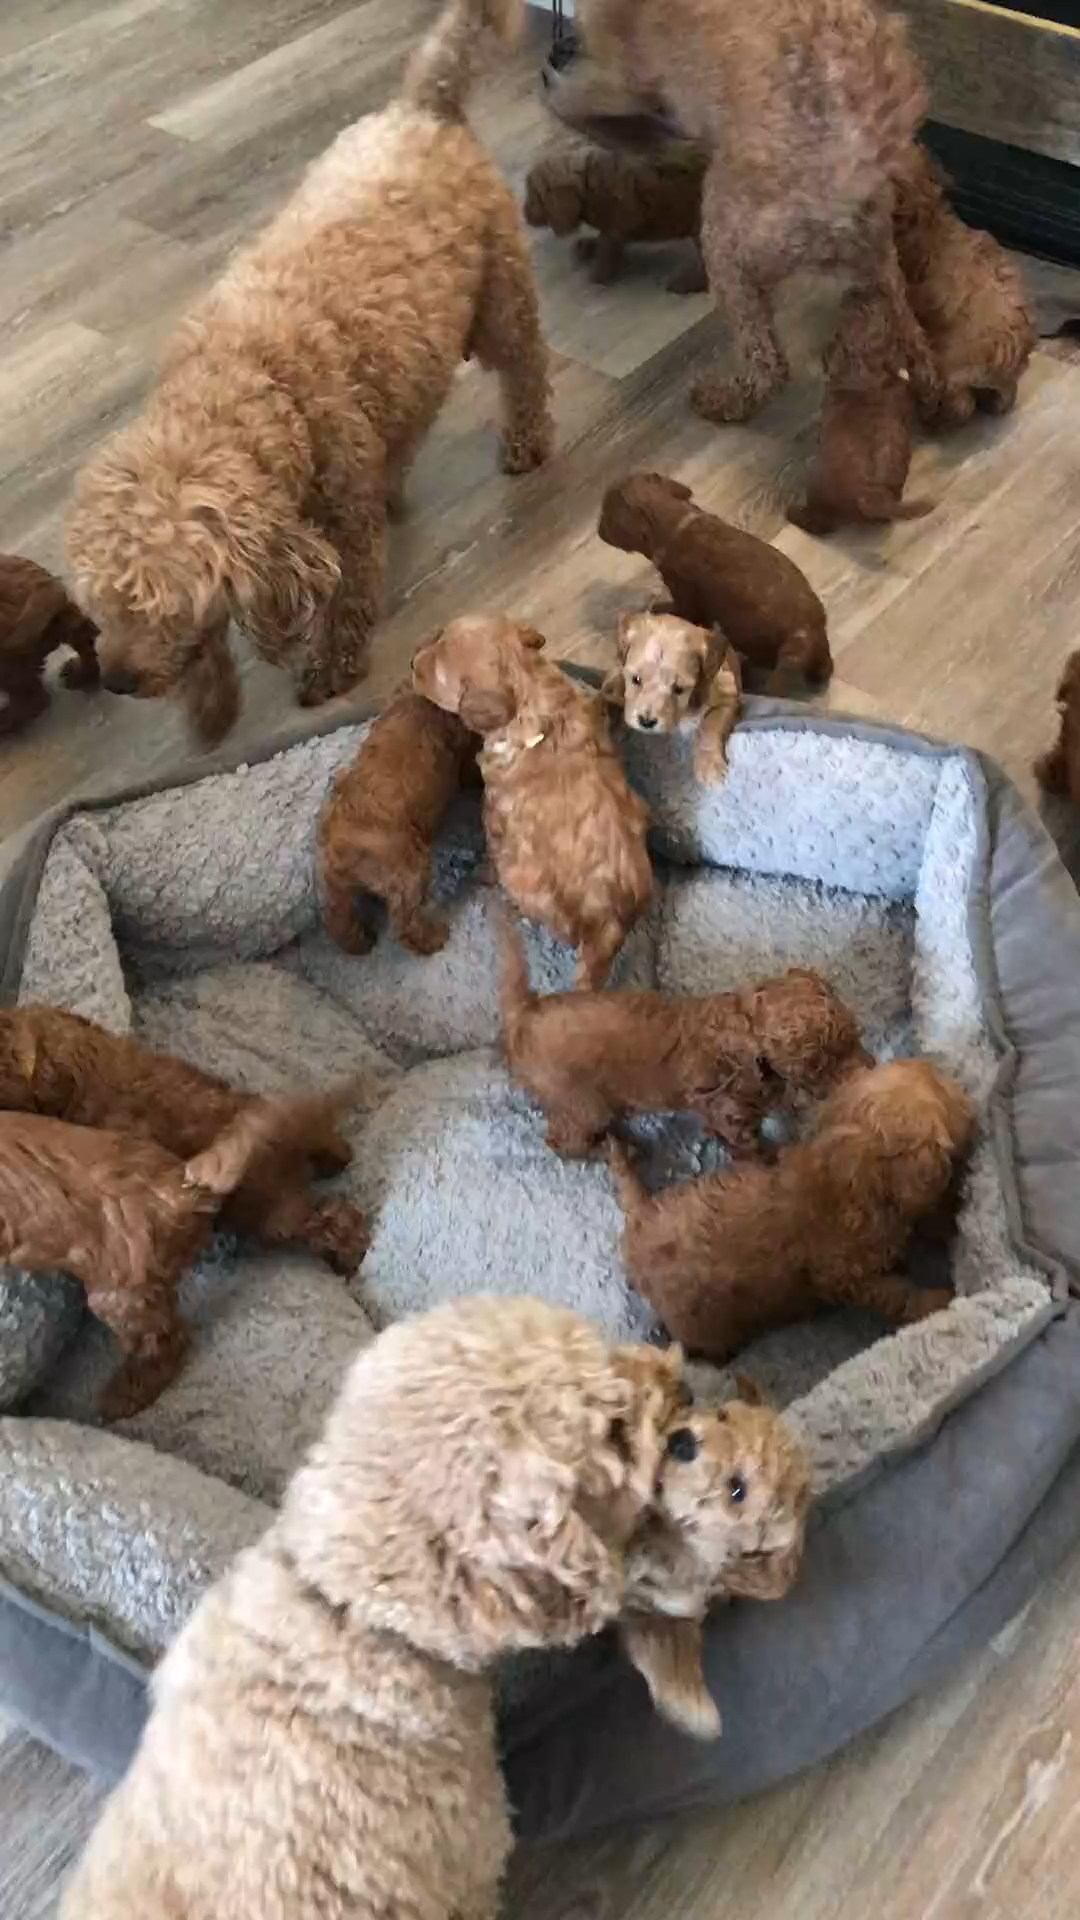 🐶🐶 See here 🐶🐶